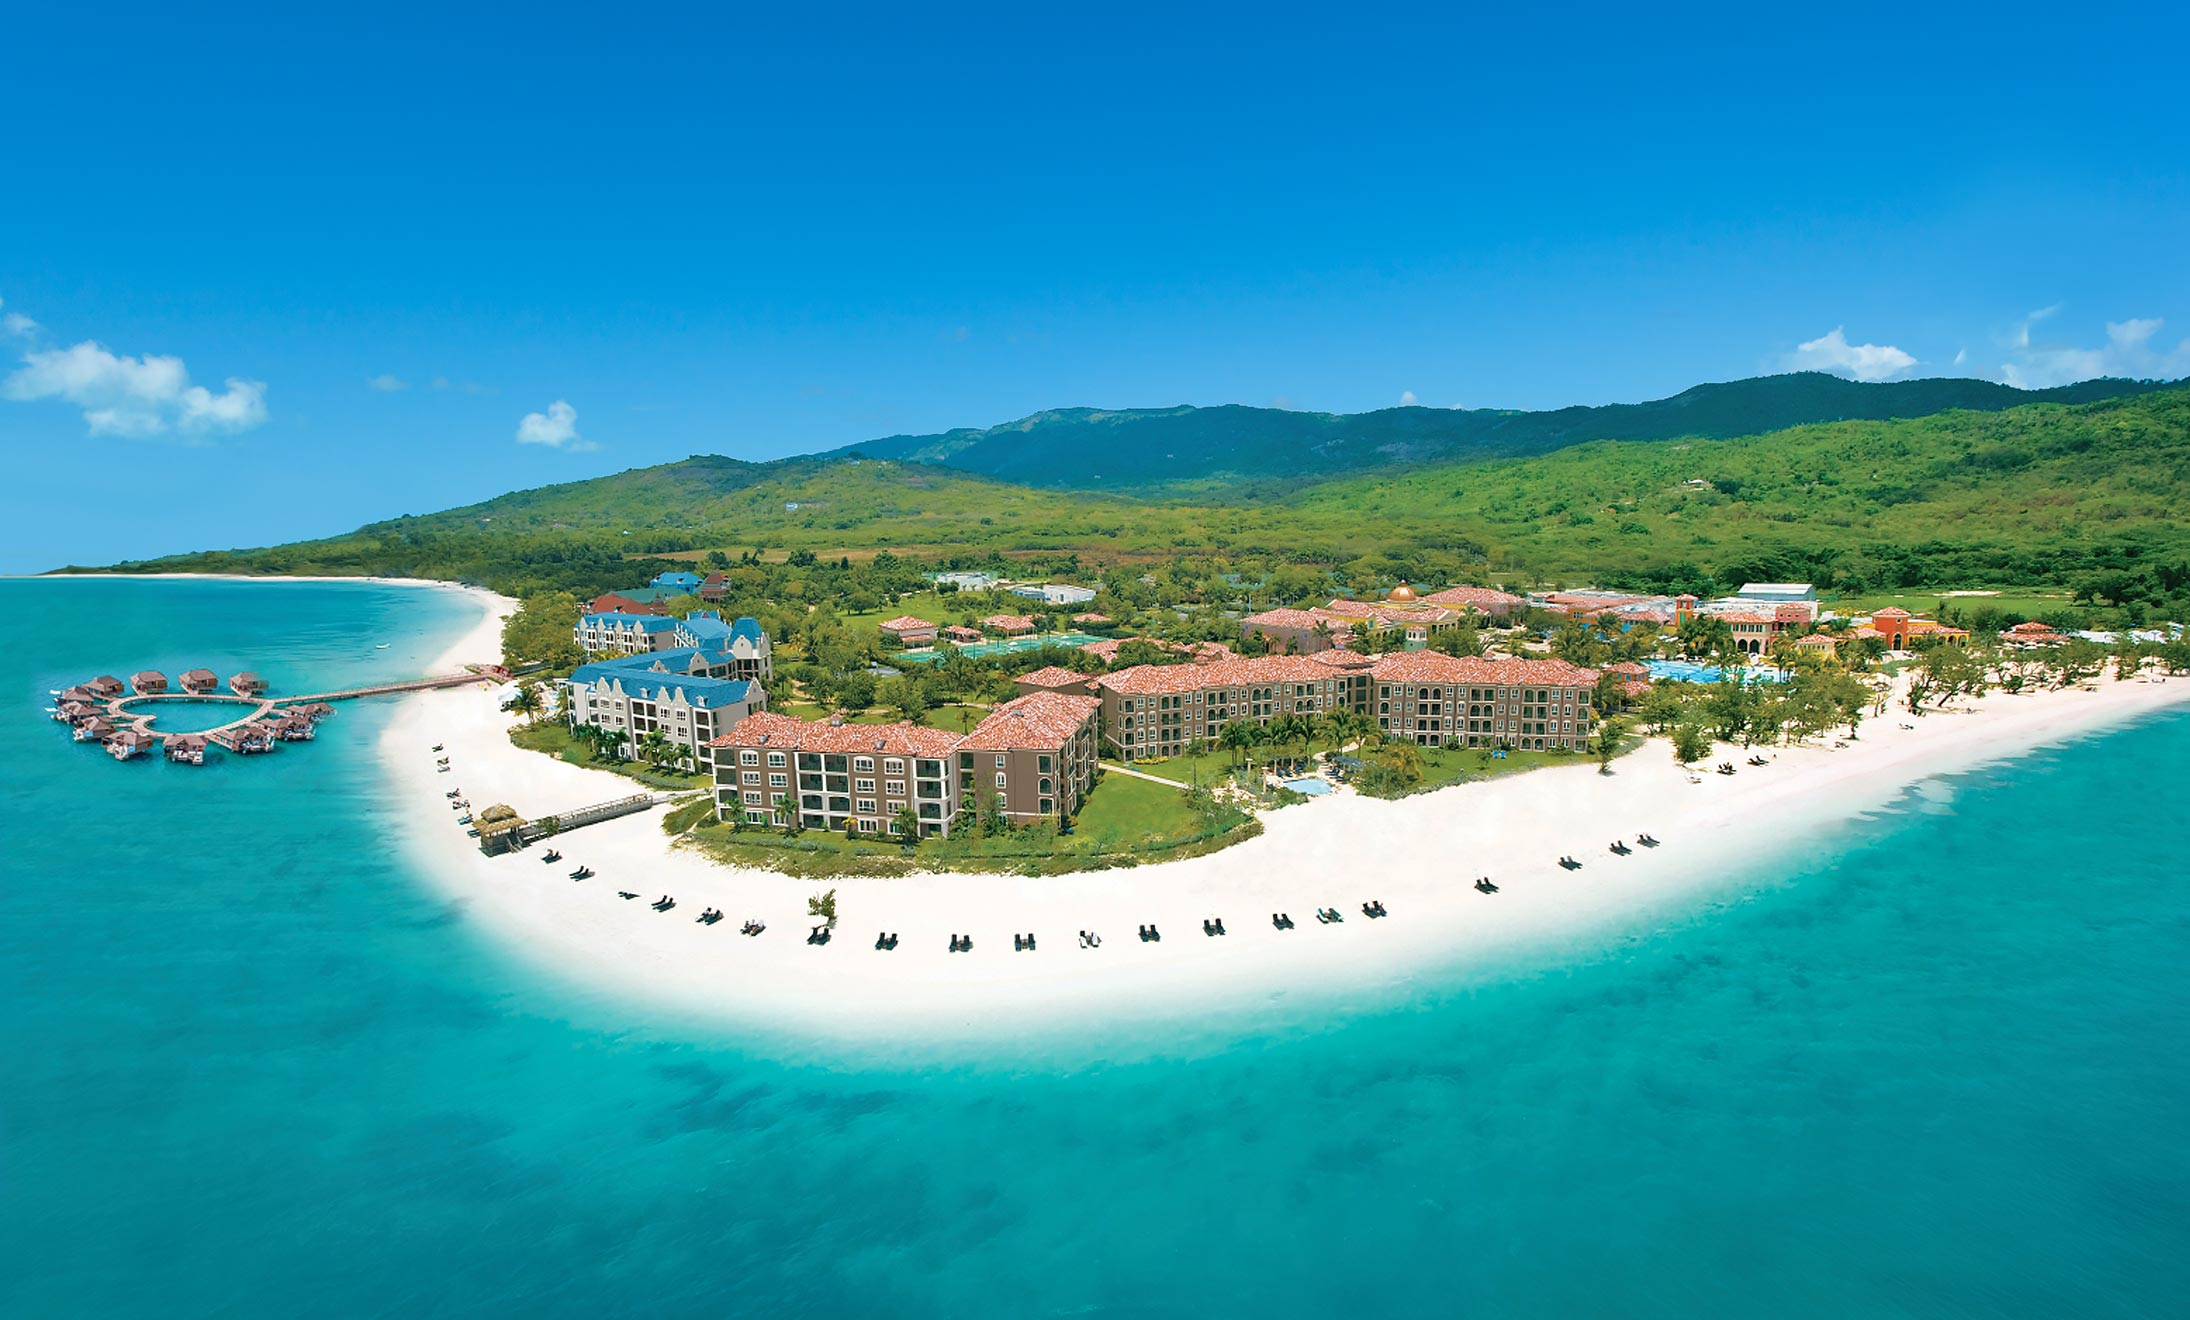 ab01528ebab1f Sandals Resorts - Five Star All-Inclusive Luxury Vacations in the ...